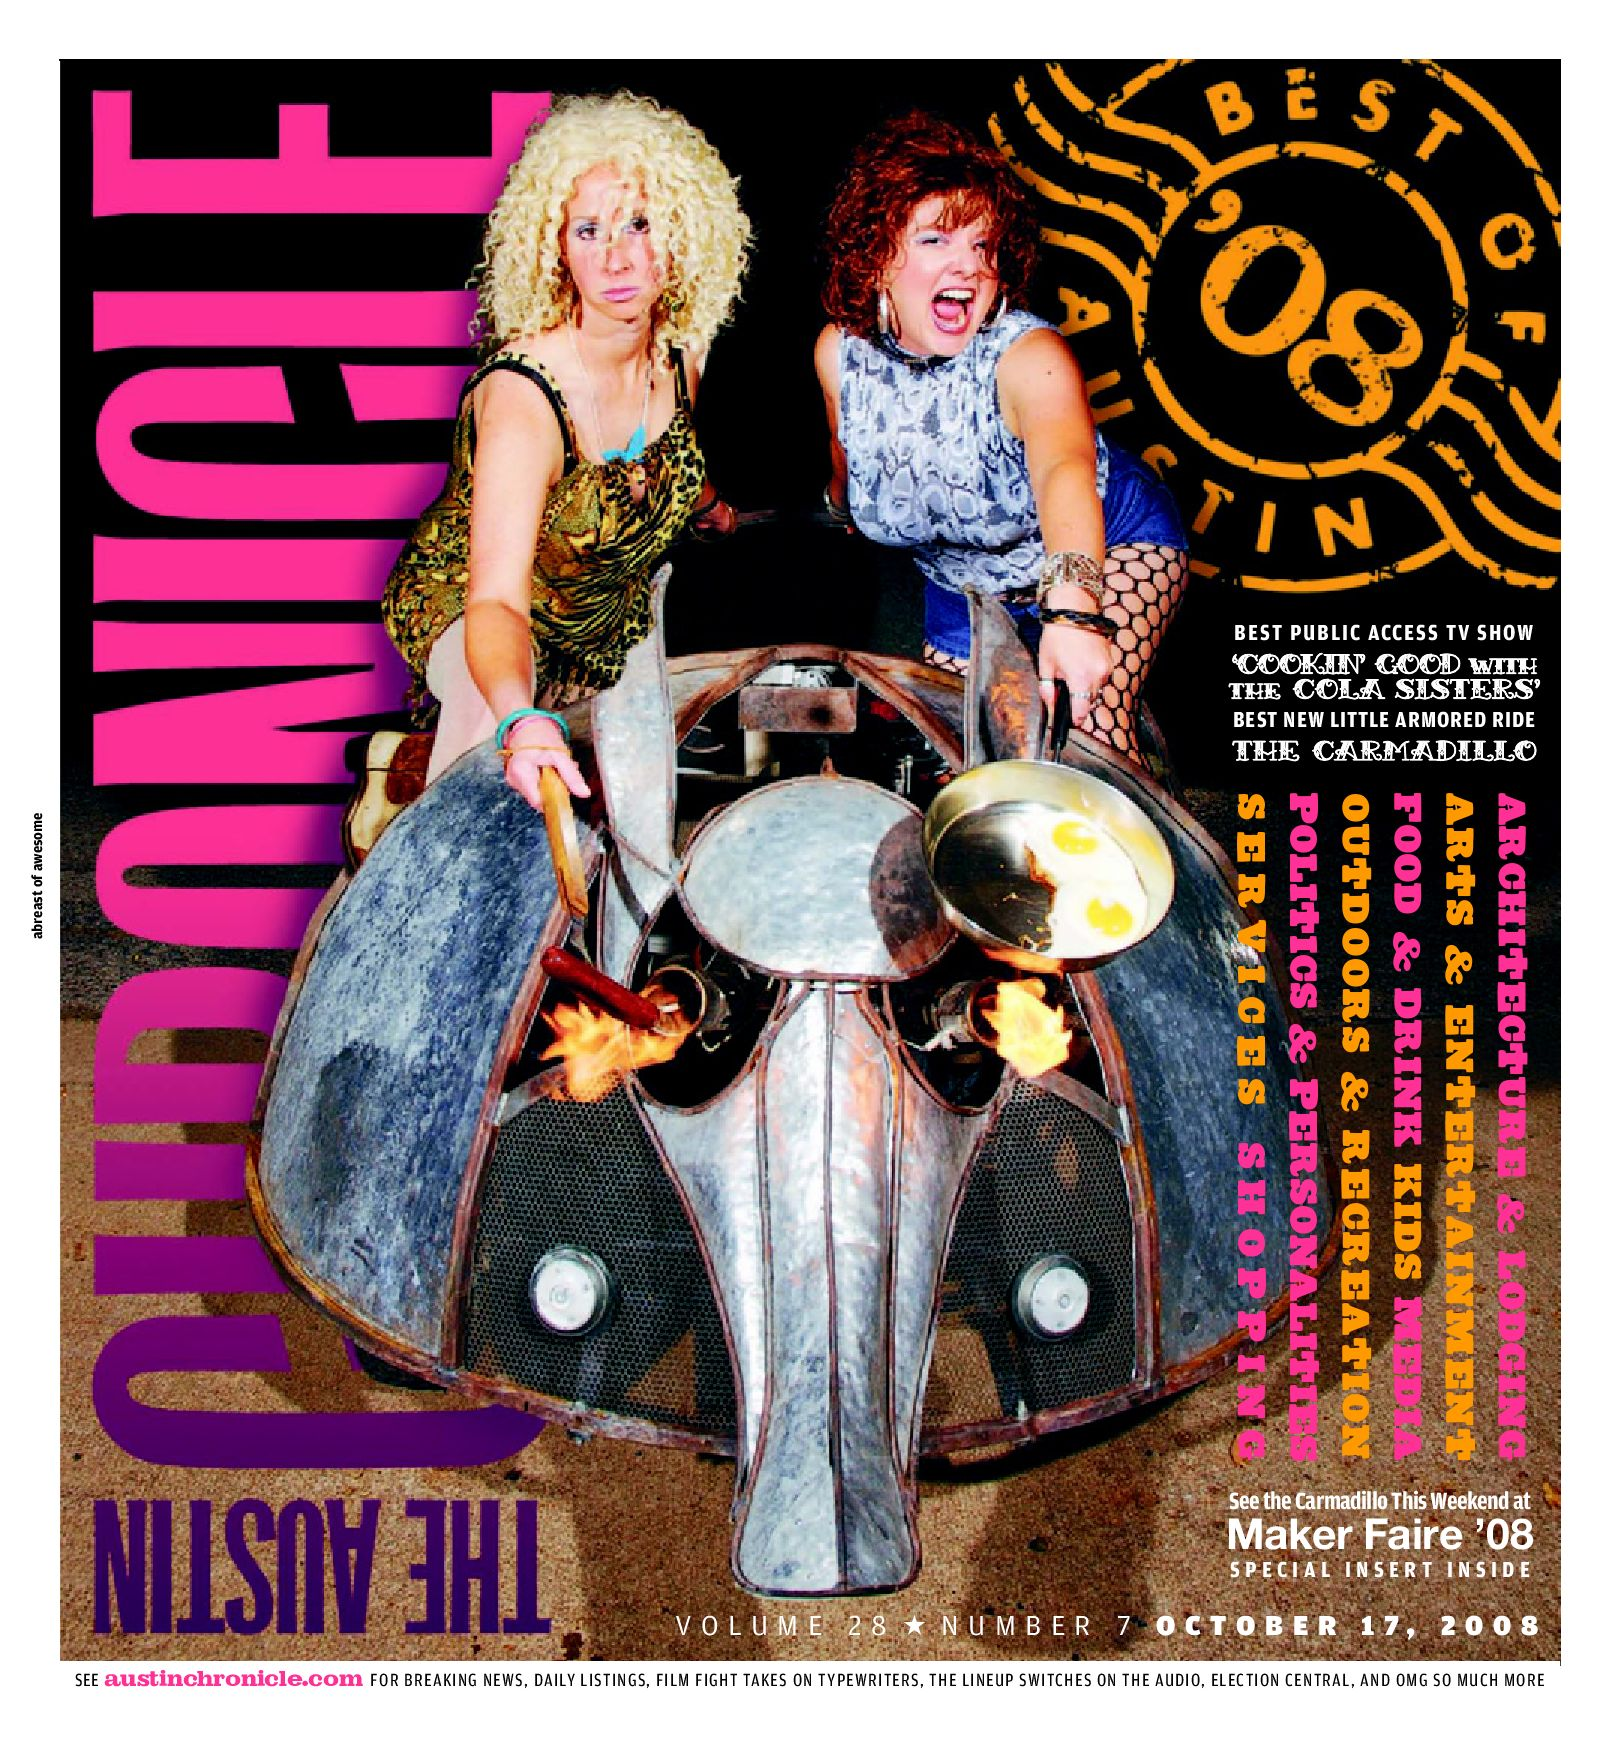 dbc6c0669c96 The Austin Chronicle V28N7 by Austin Chronicle - issuu